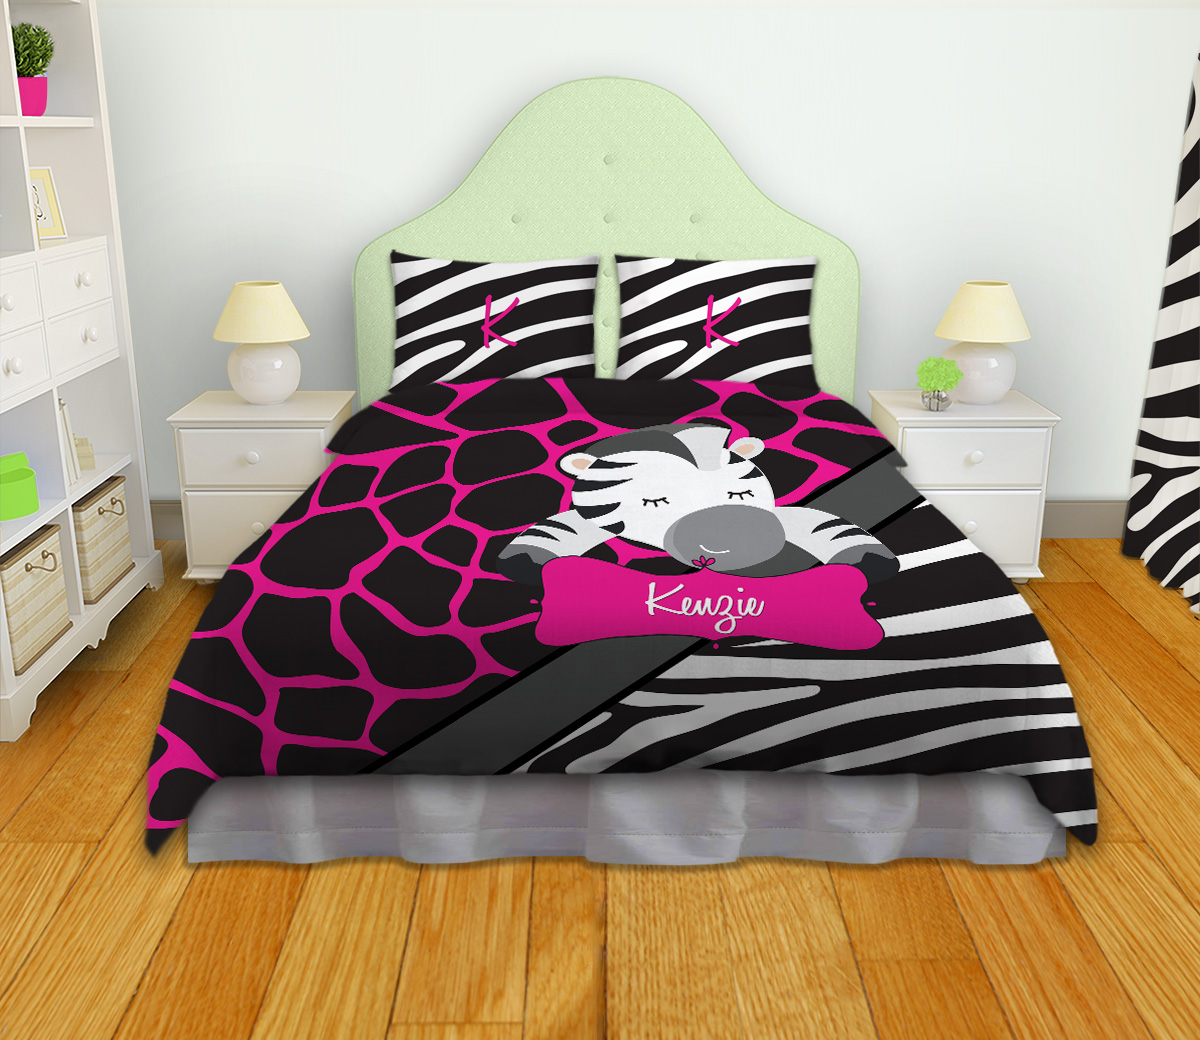 Giraffe Pink Print Bedding With Black And White Zebra